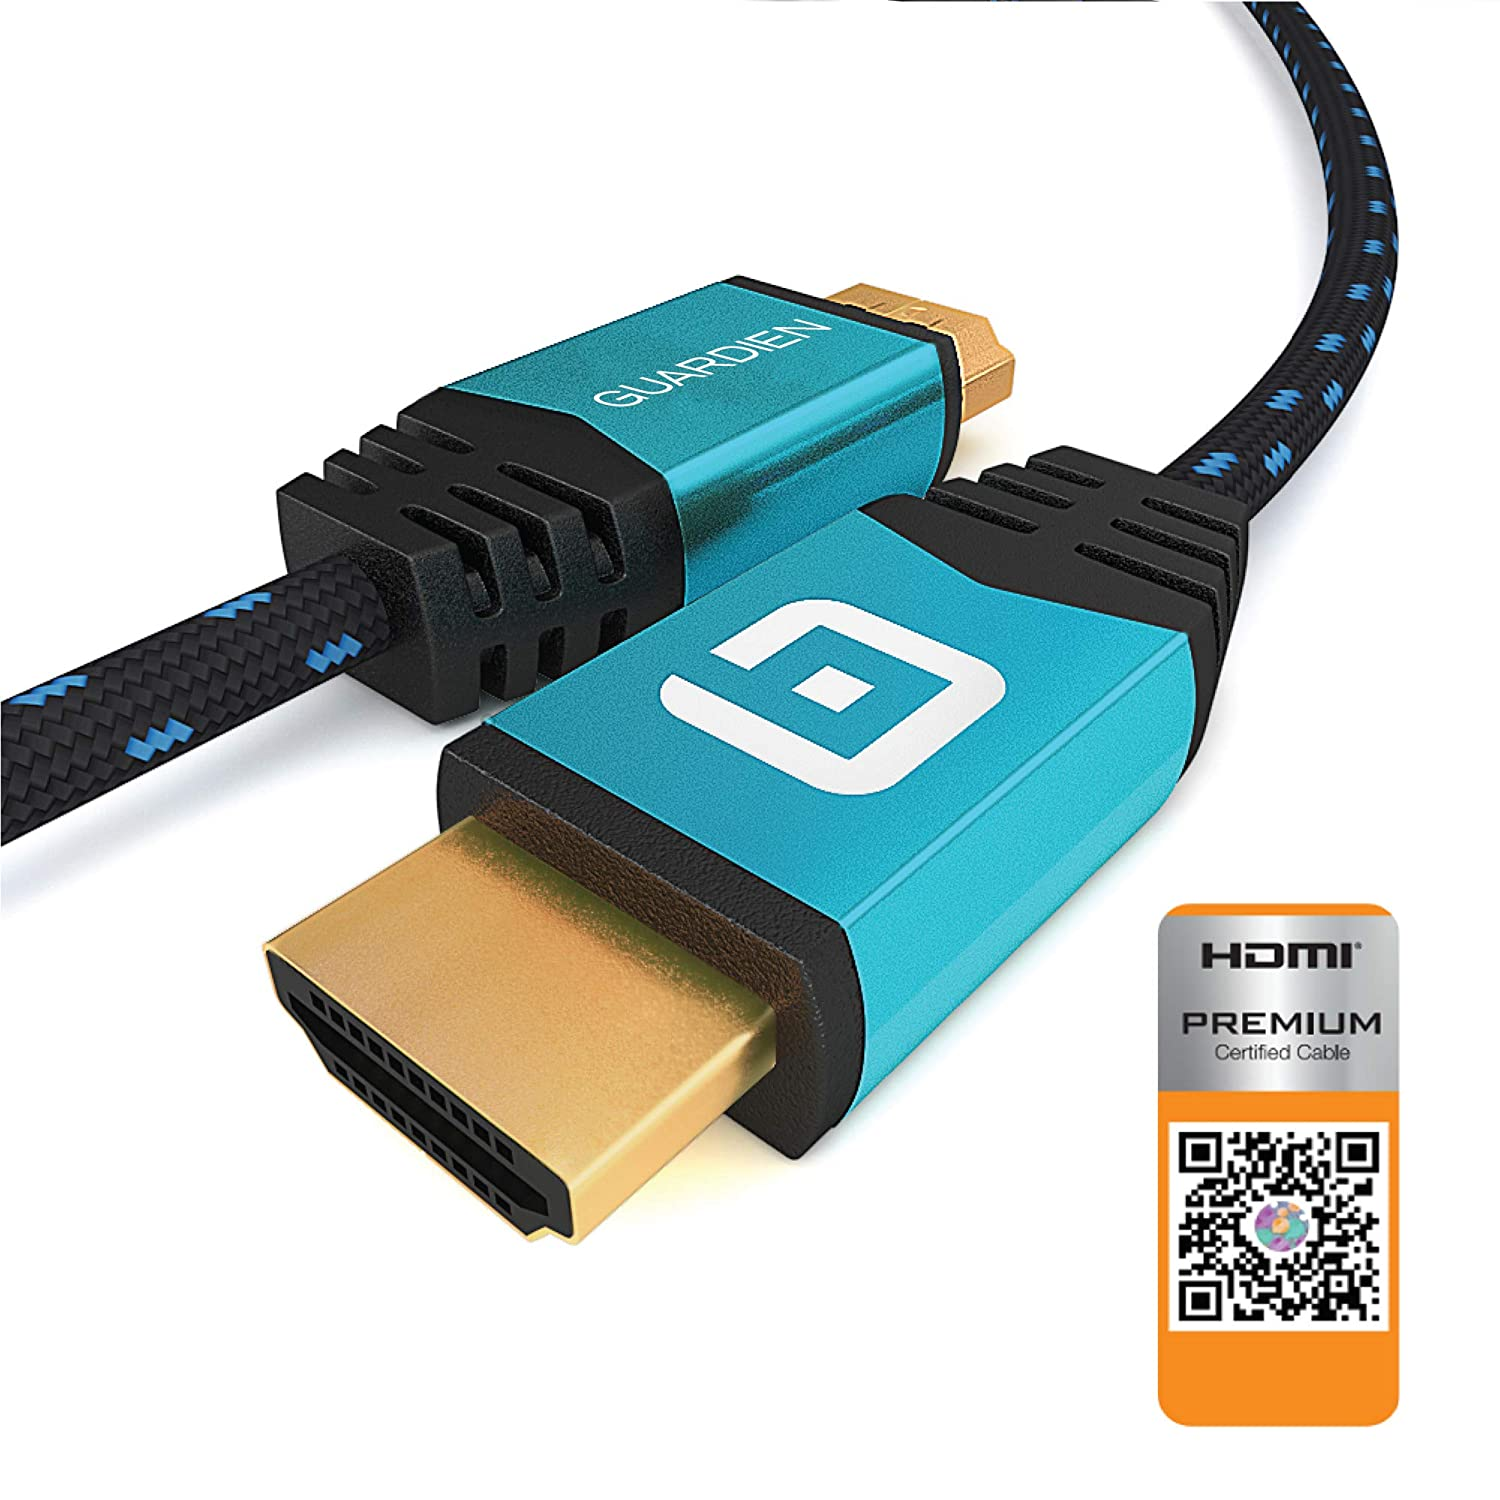 Premium Cable HDMI 3 Metros - Ultra HD 4k HDMI: Amazon.es: Electrónica